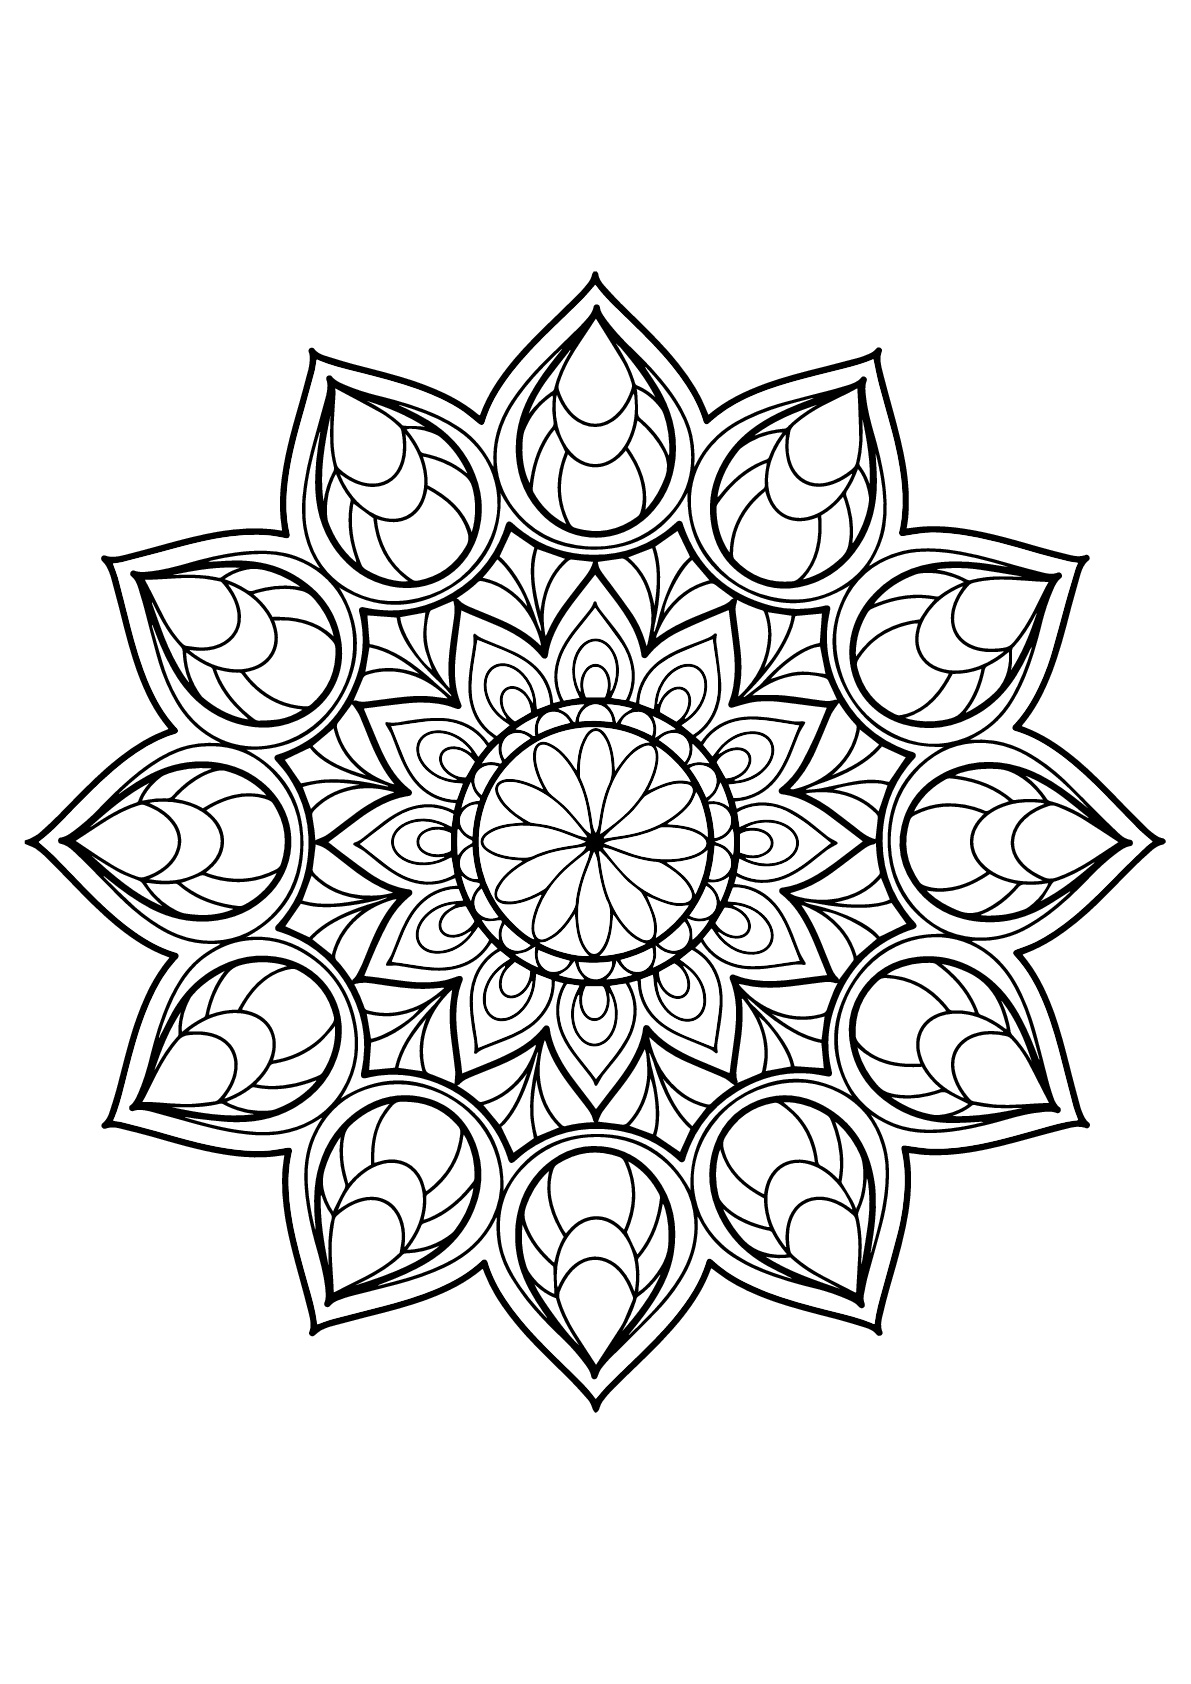 free printable mandalas to color for adults 20 free printable mandala coloring pages for adults printable adults mandalas for to free color